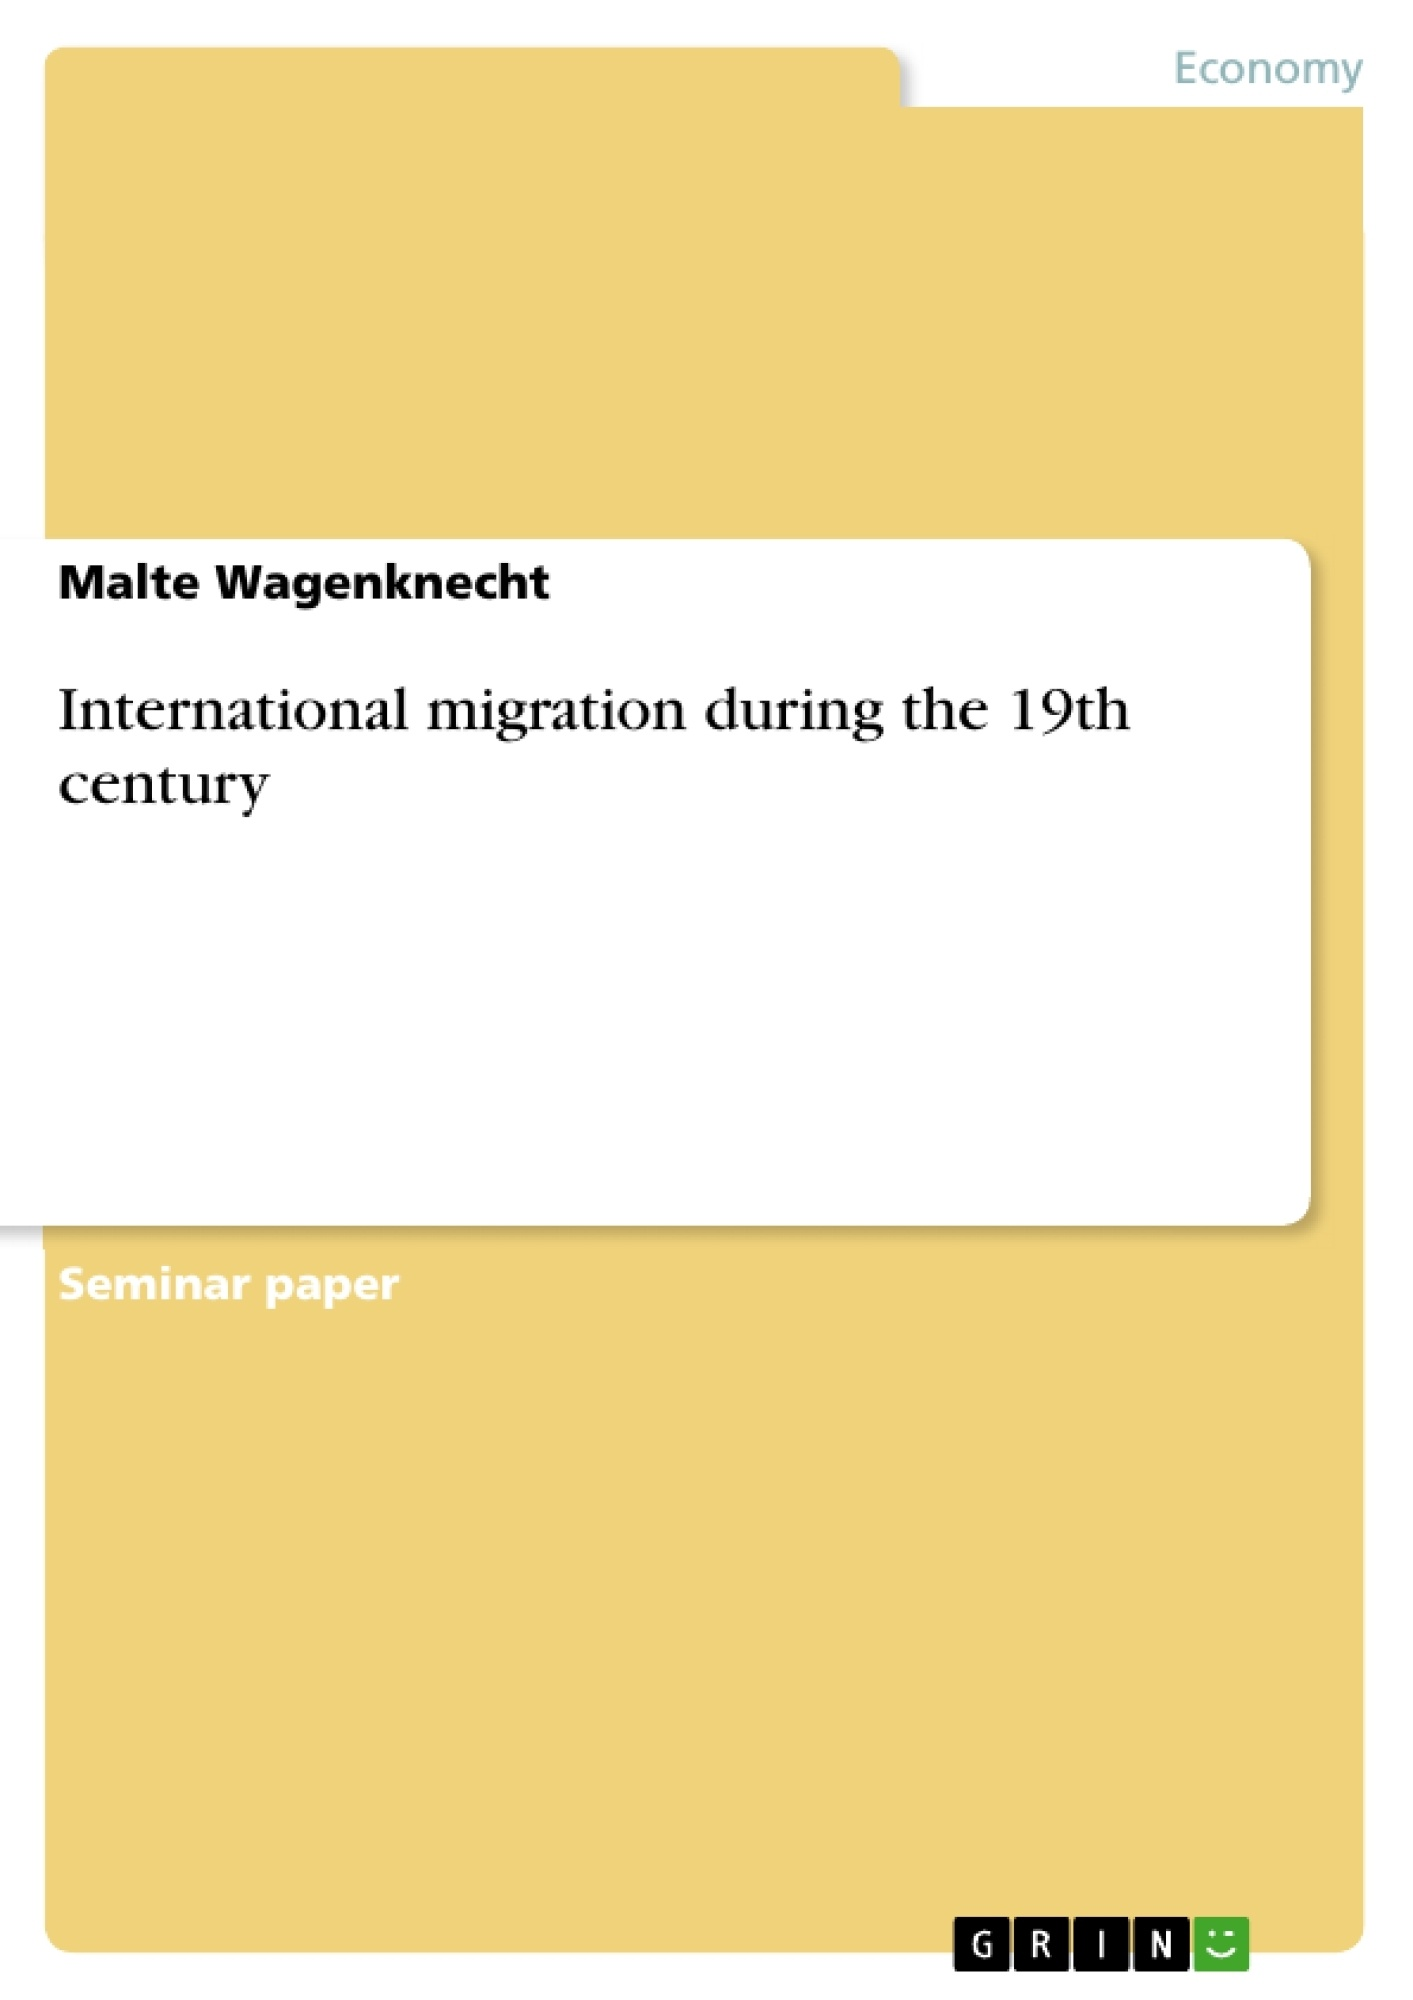 International migration during the 19th century